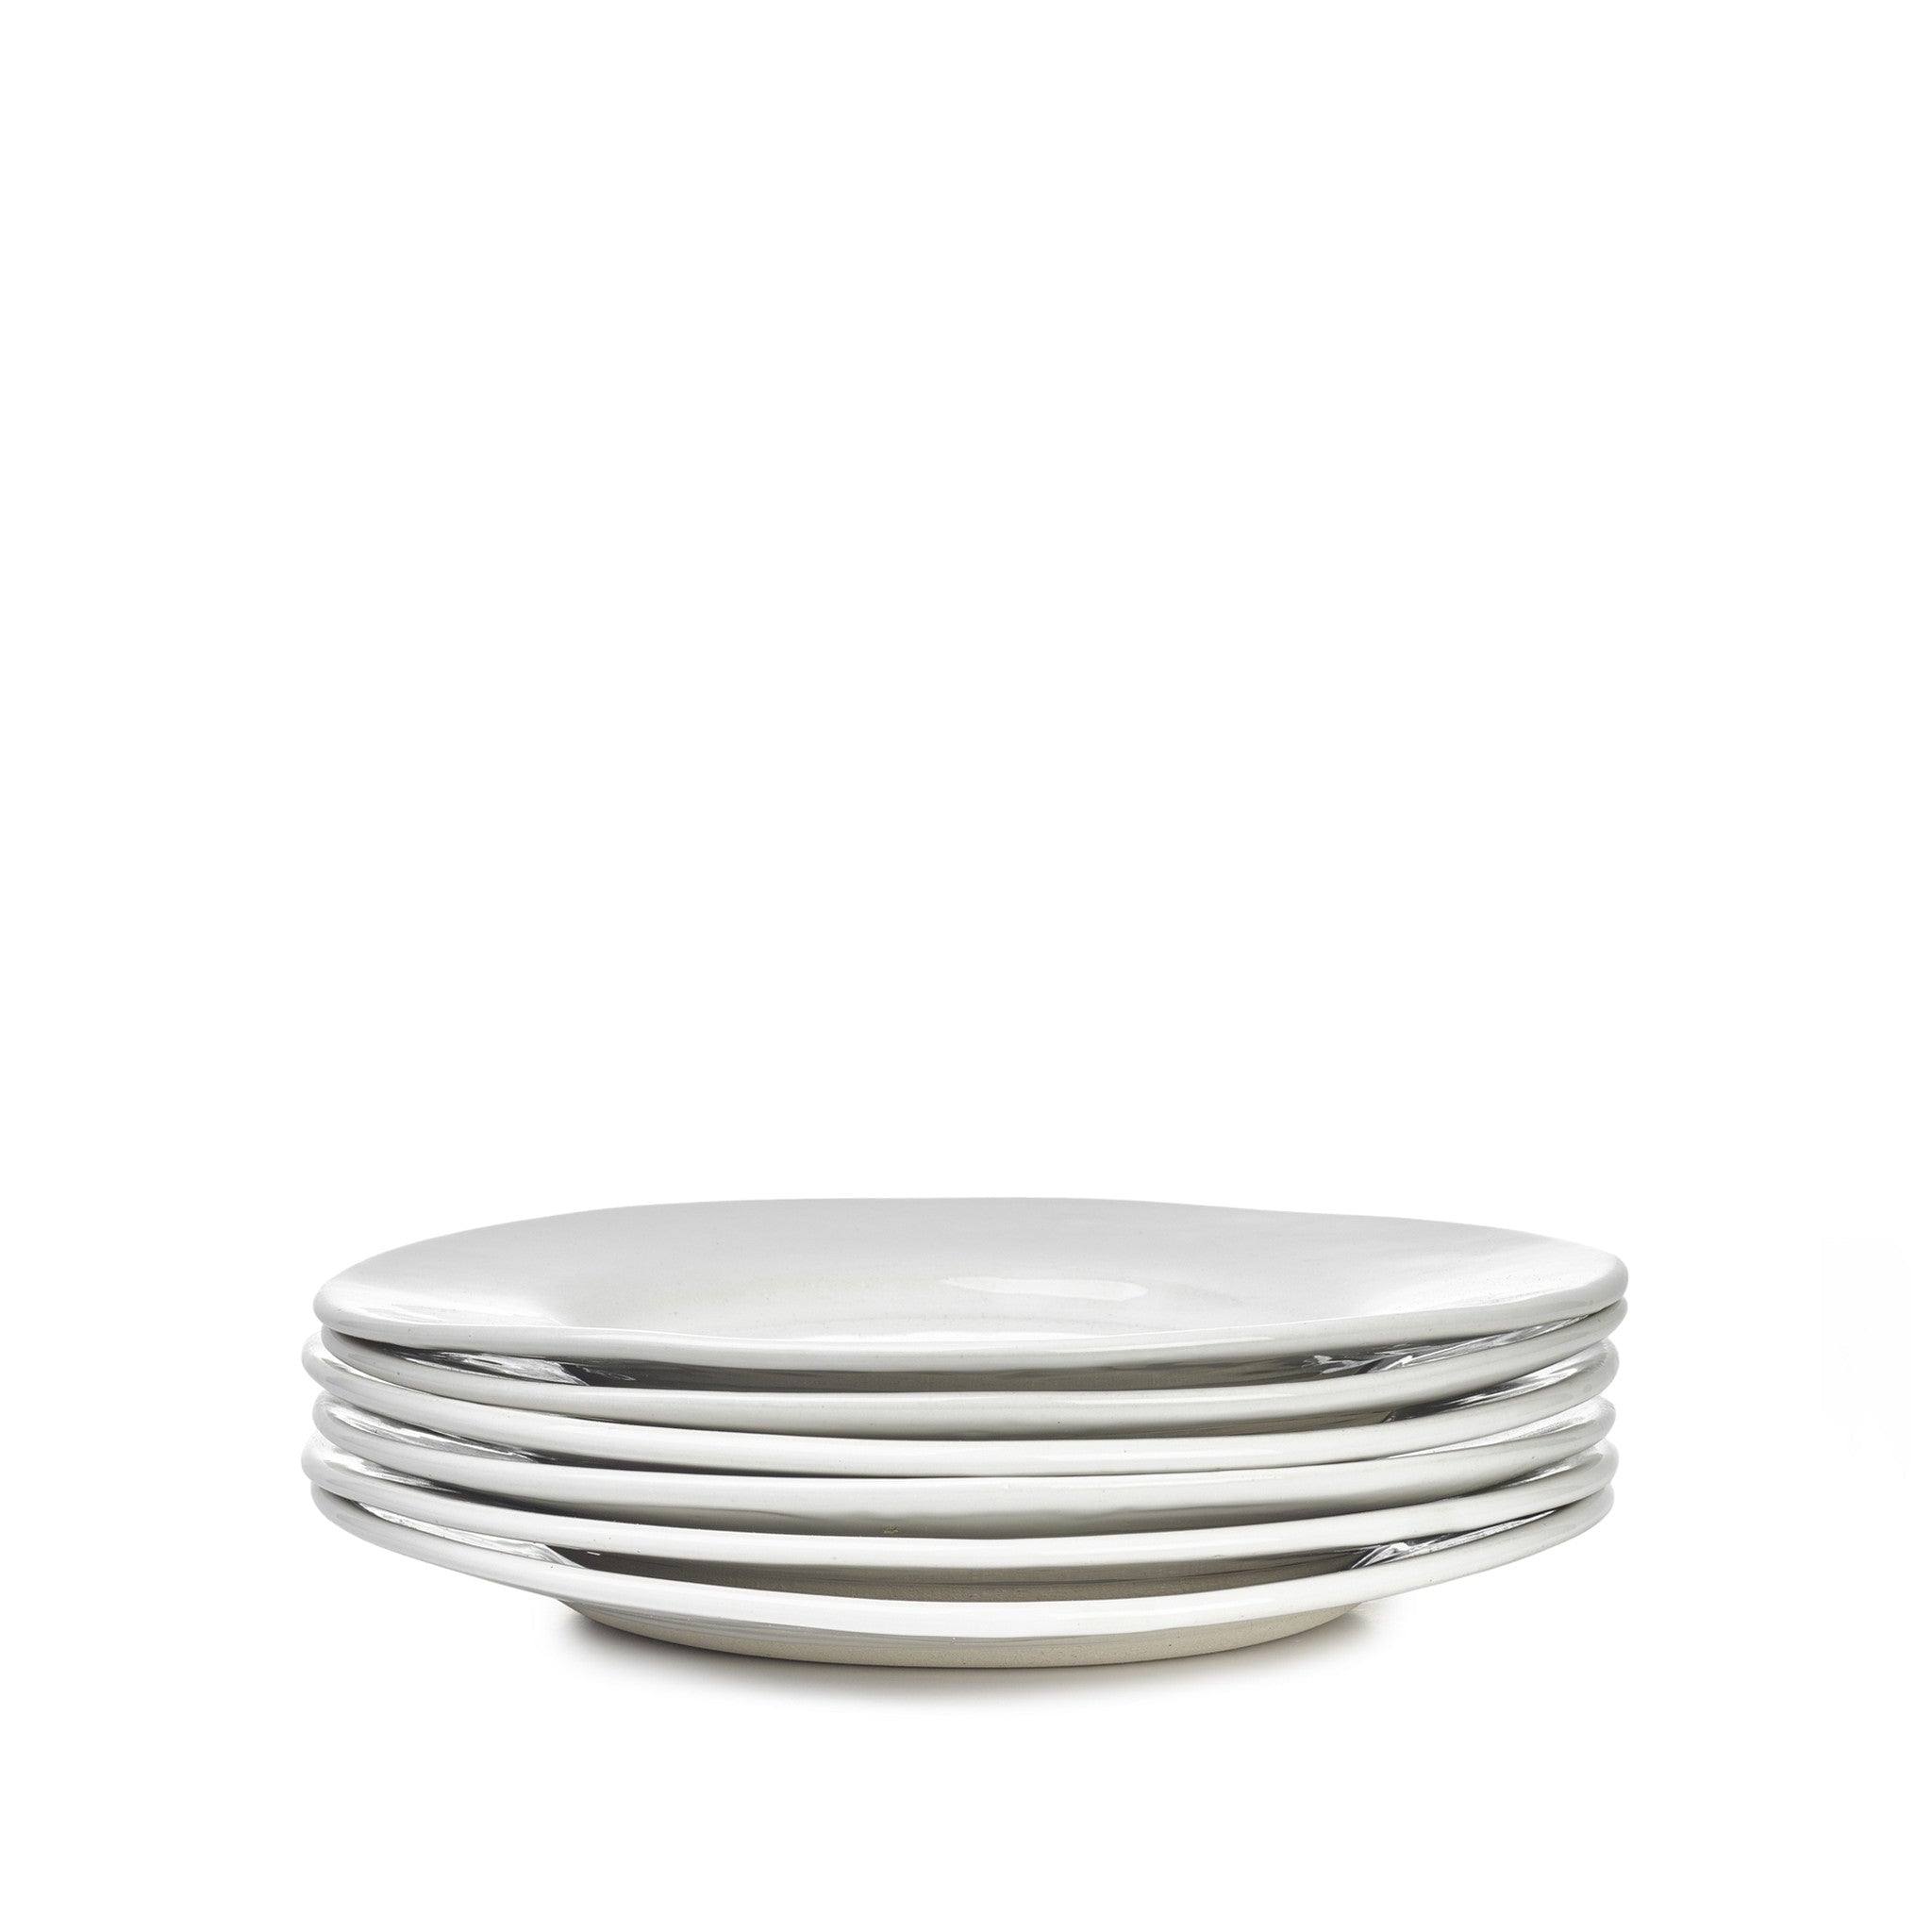 Wonki Ware Side Plate in White, 23cm